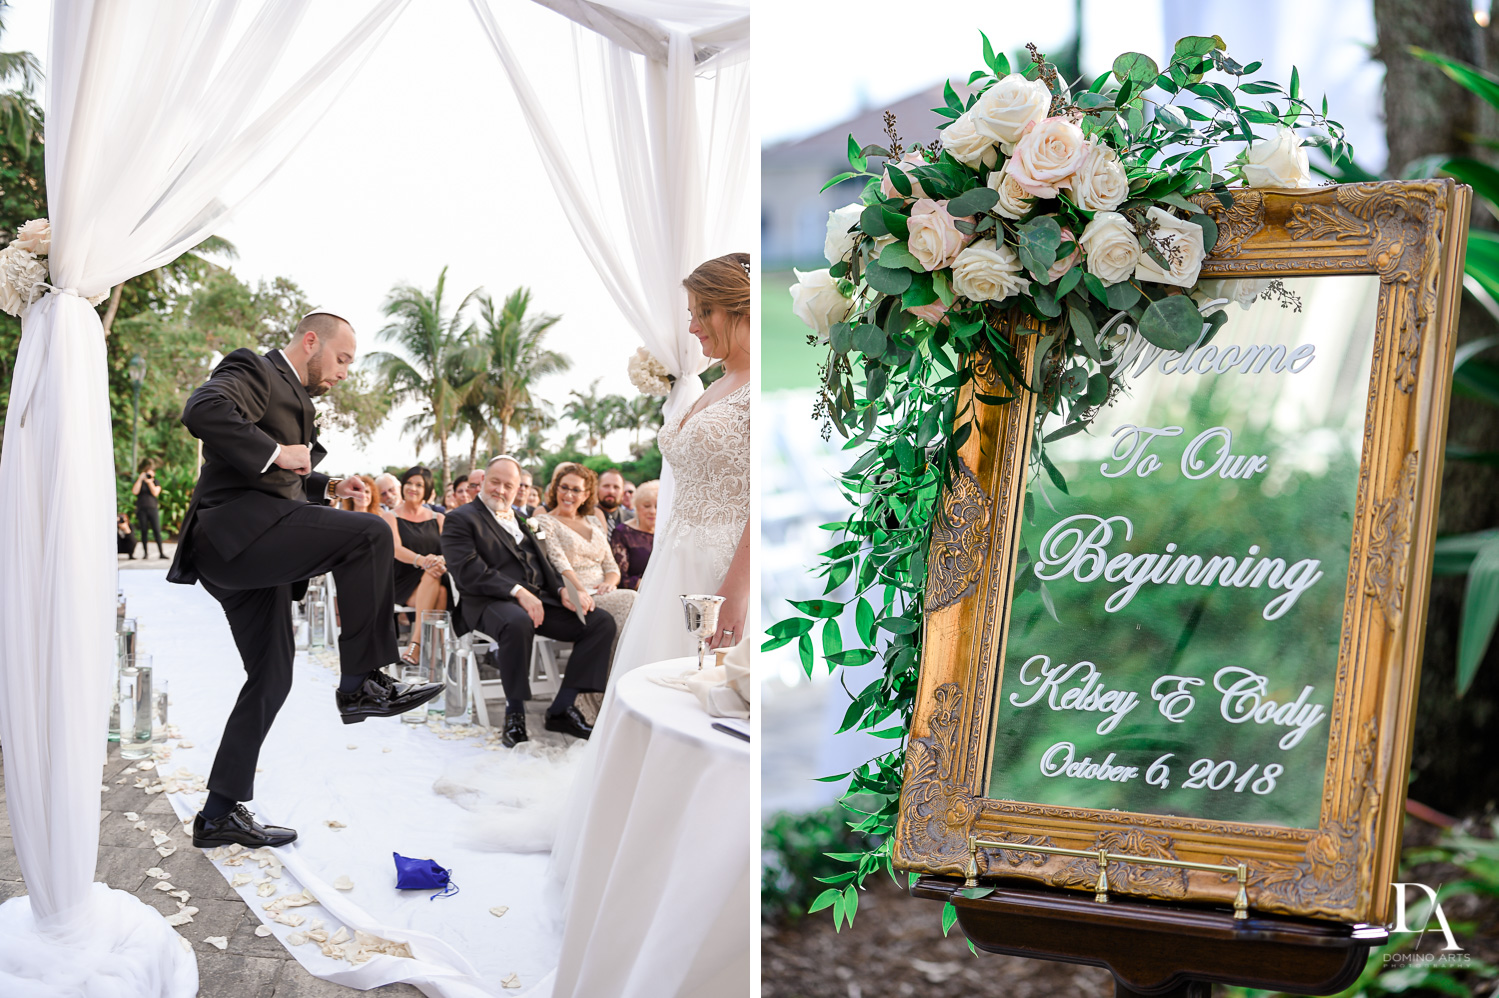 Jewish ceremony at Romantic Outdoors Wedding at Woodfield Country Club in Boca Raton, Florida by Domino Arts Photography